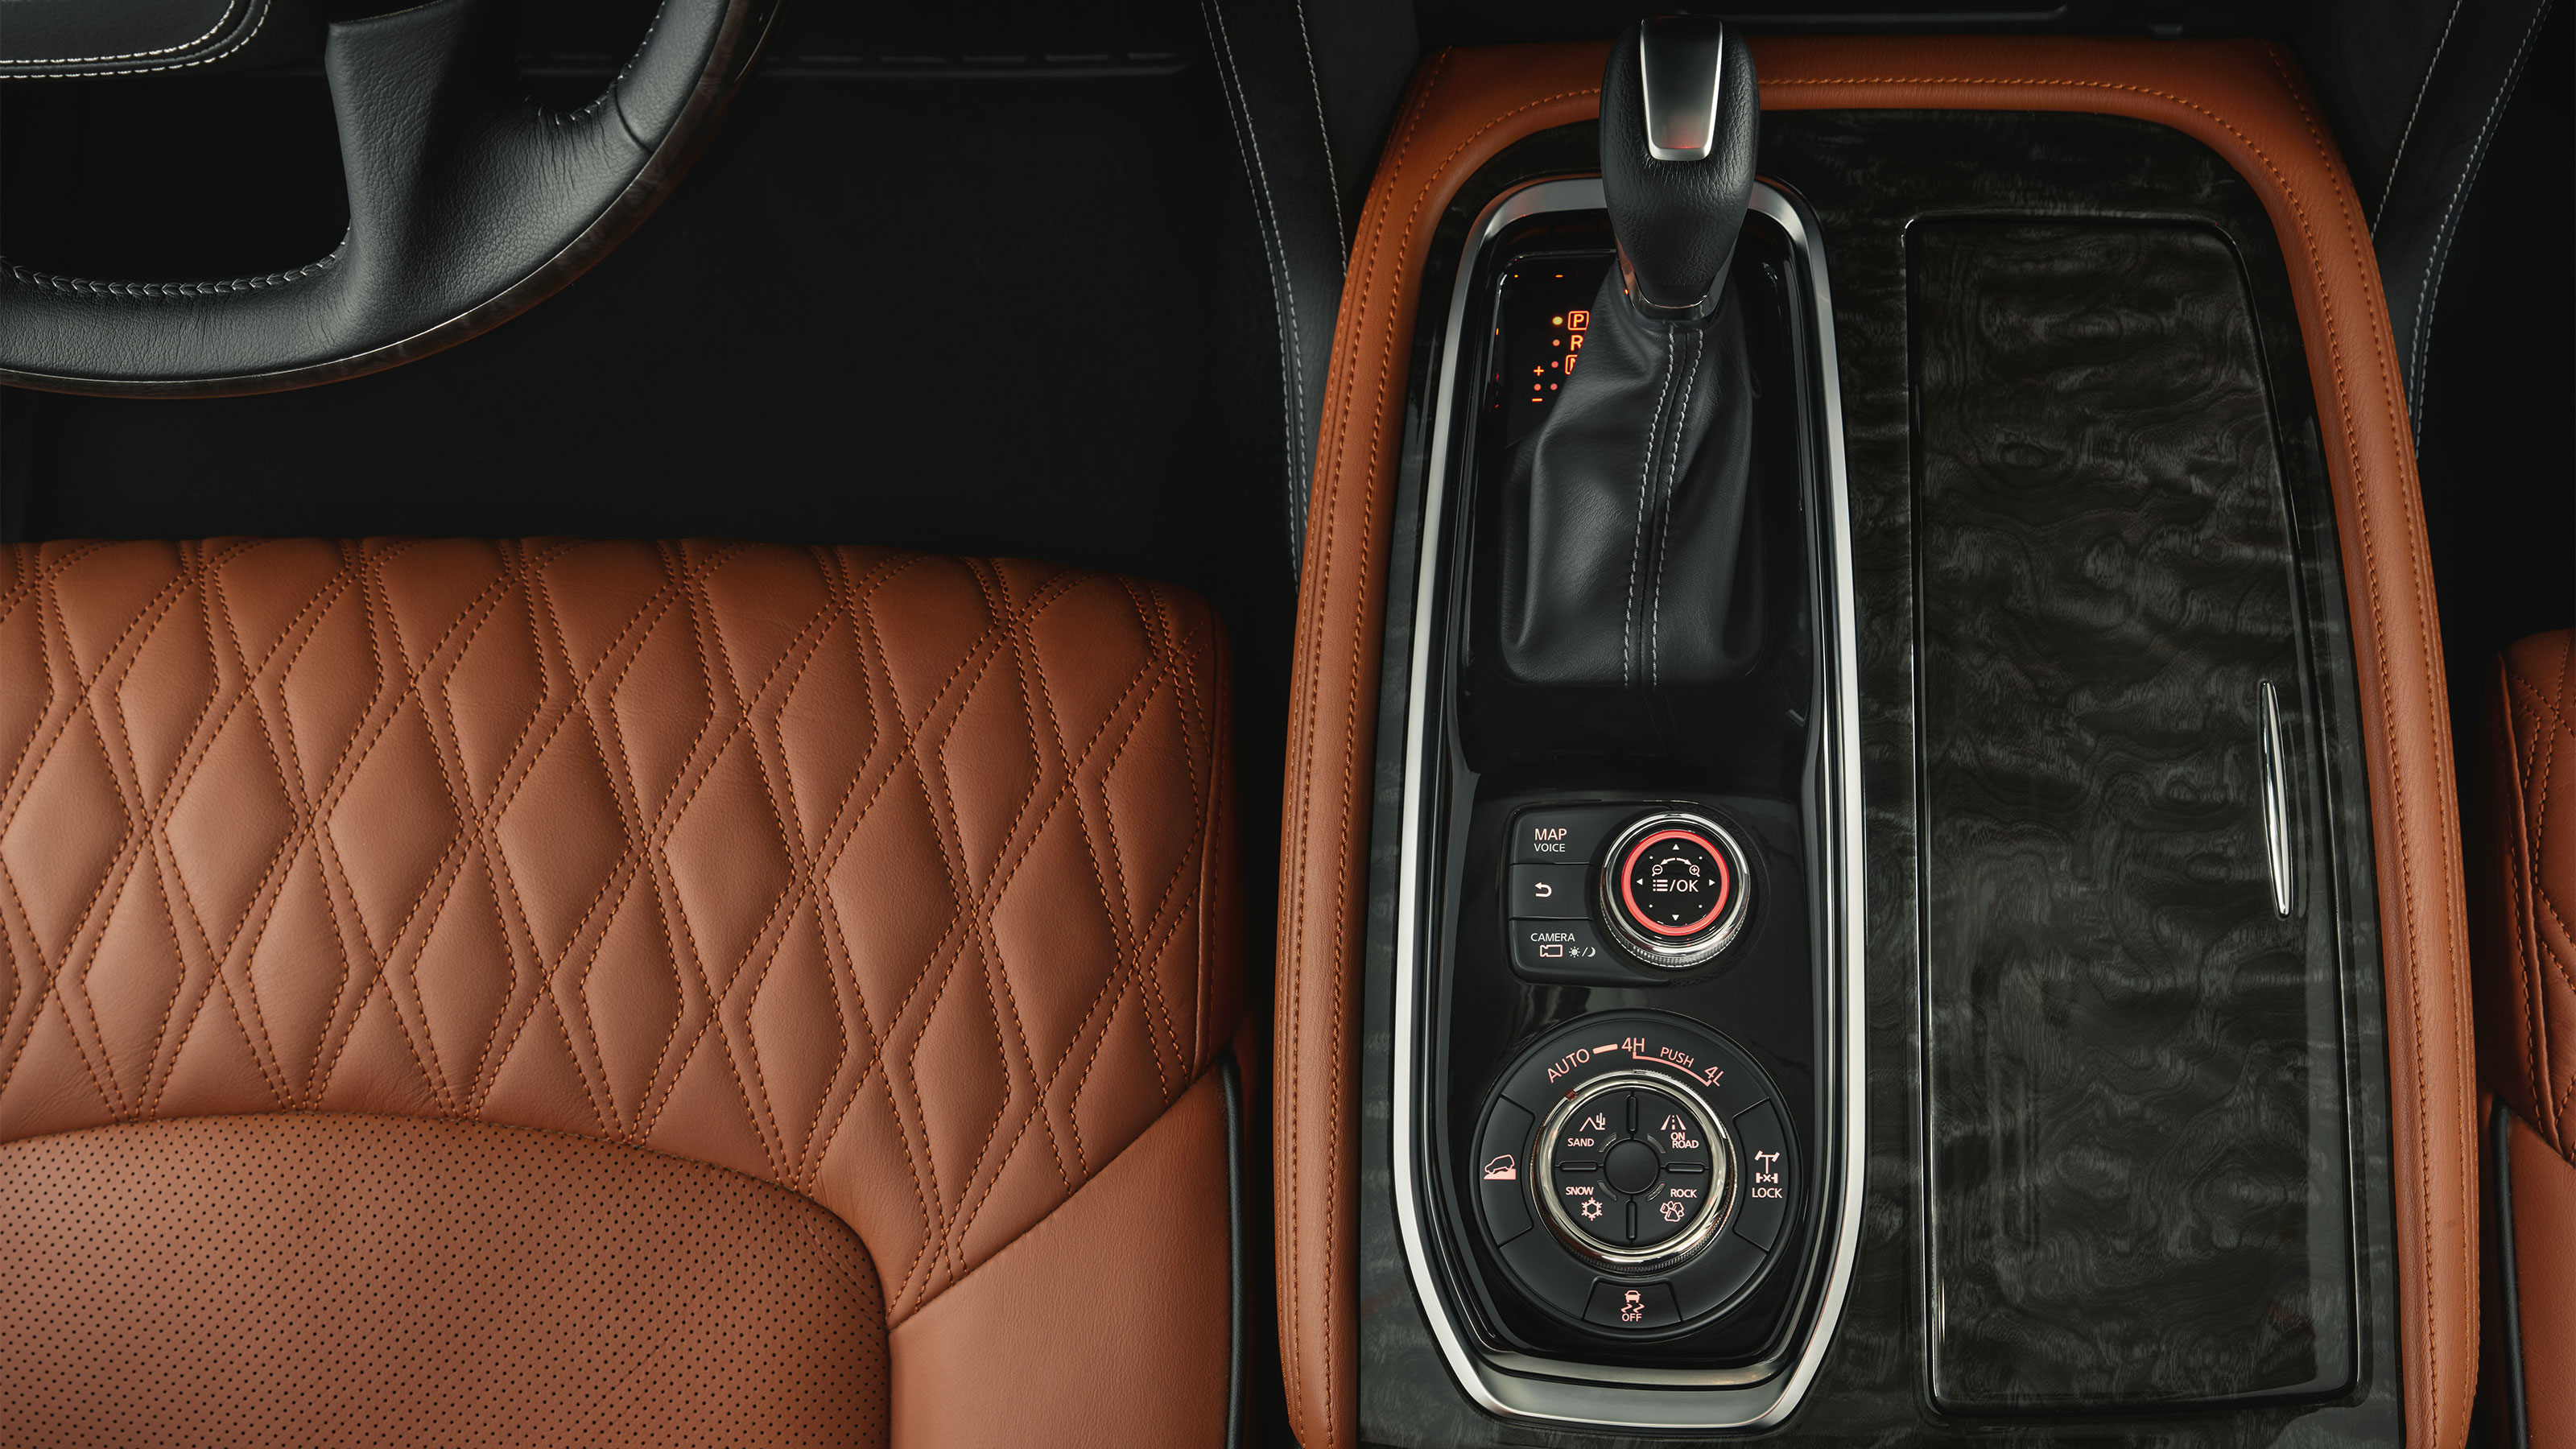 2020 NISSAN PATROL gear stick and drive mode switch